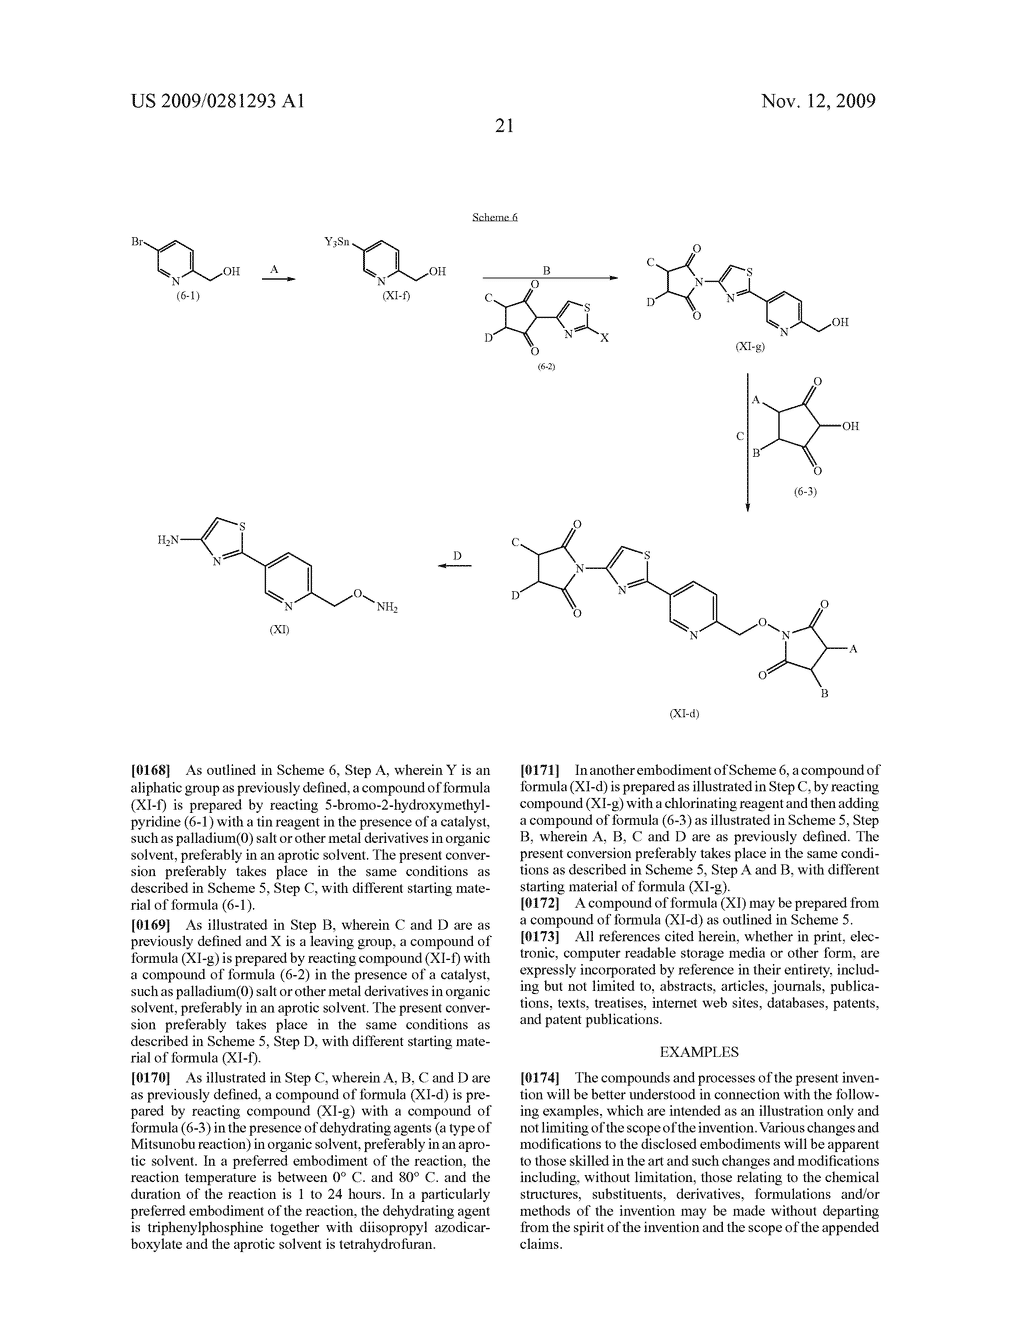 PROCESSES FOR THE PREPARATION OF 2 FLUORO 6-11 BICYCLIC ERYTHROMYCIN DERIVATIVES - diagram, schematic, and image 22